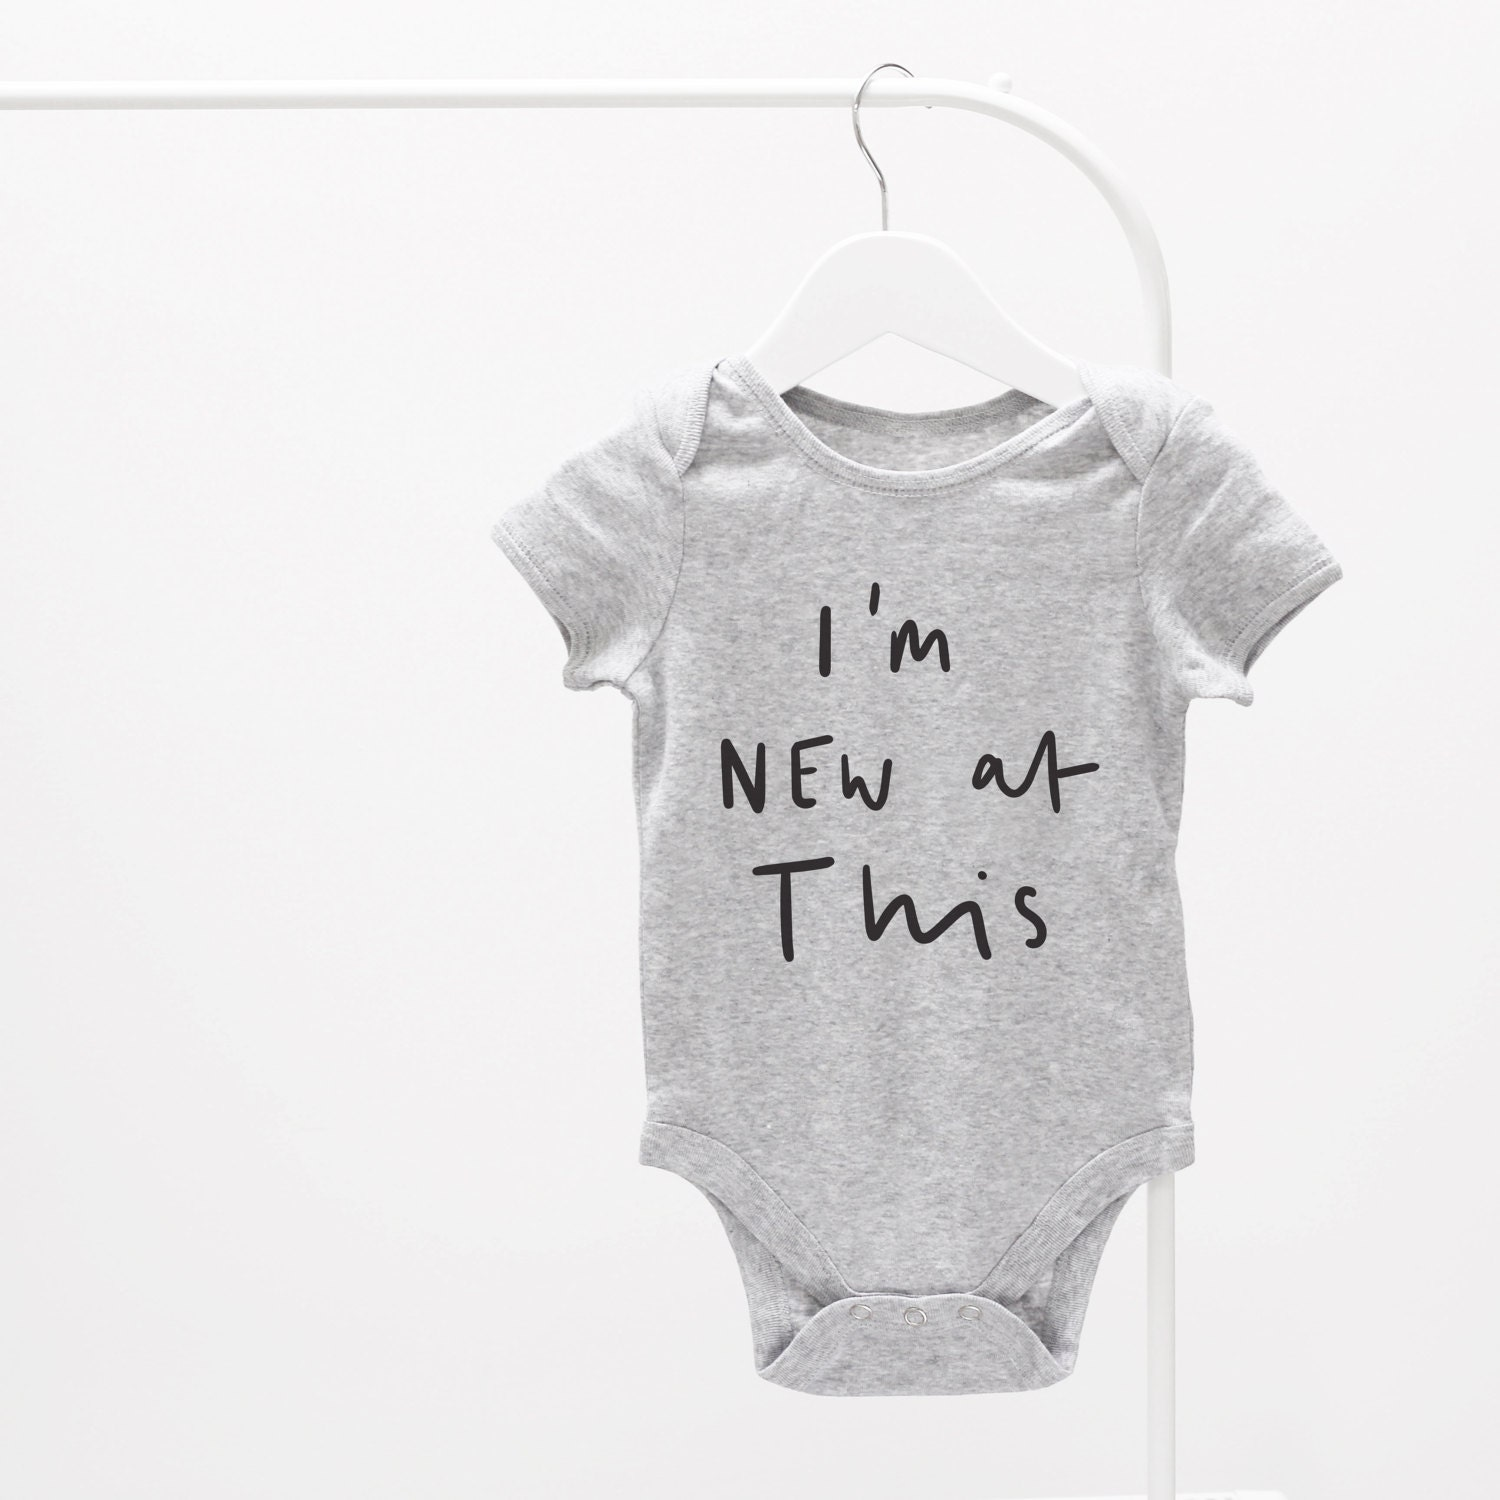 Im new at this Baby Grow  graphic baby grow fun baby grow baby clothes